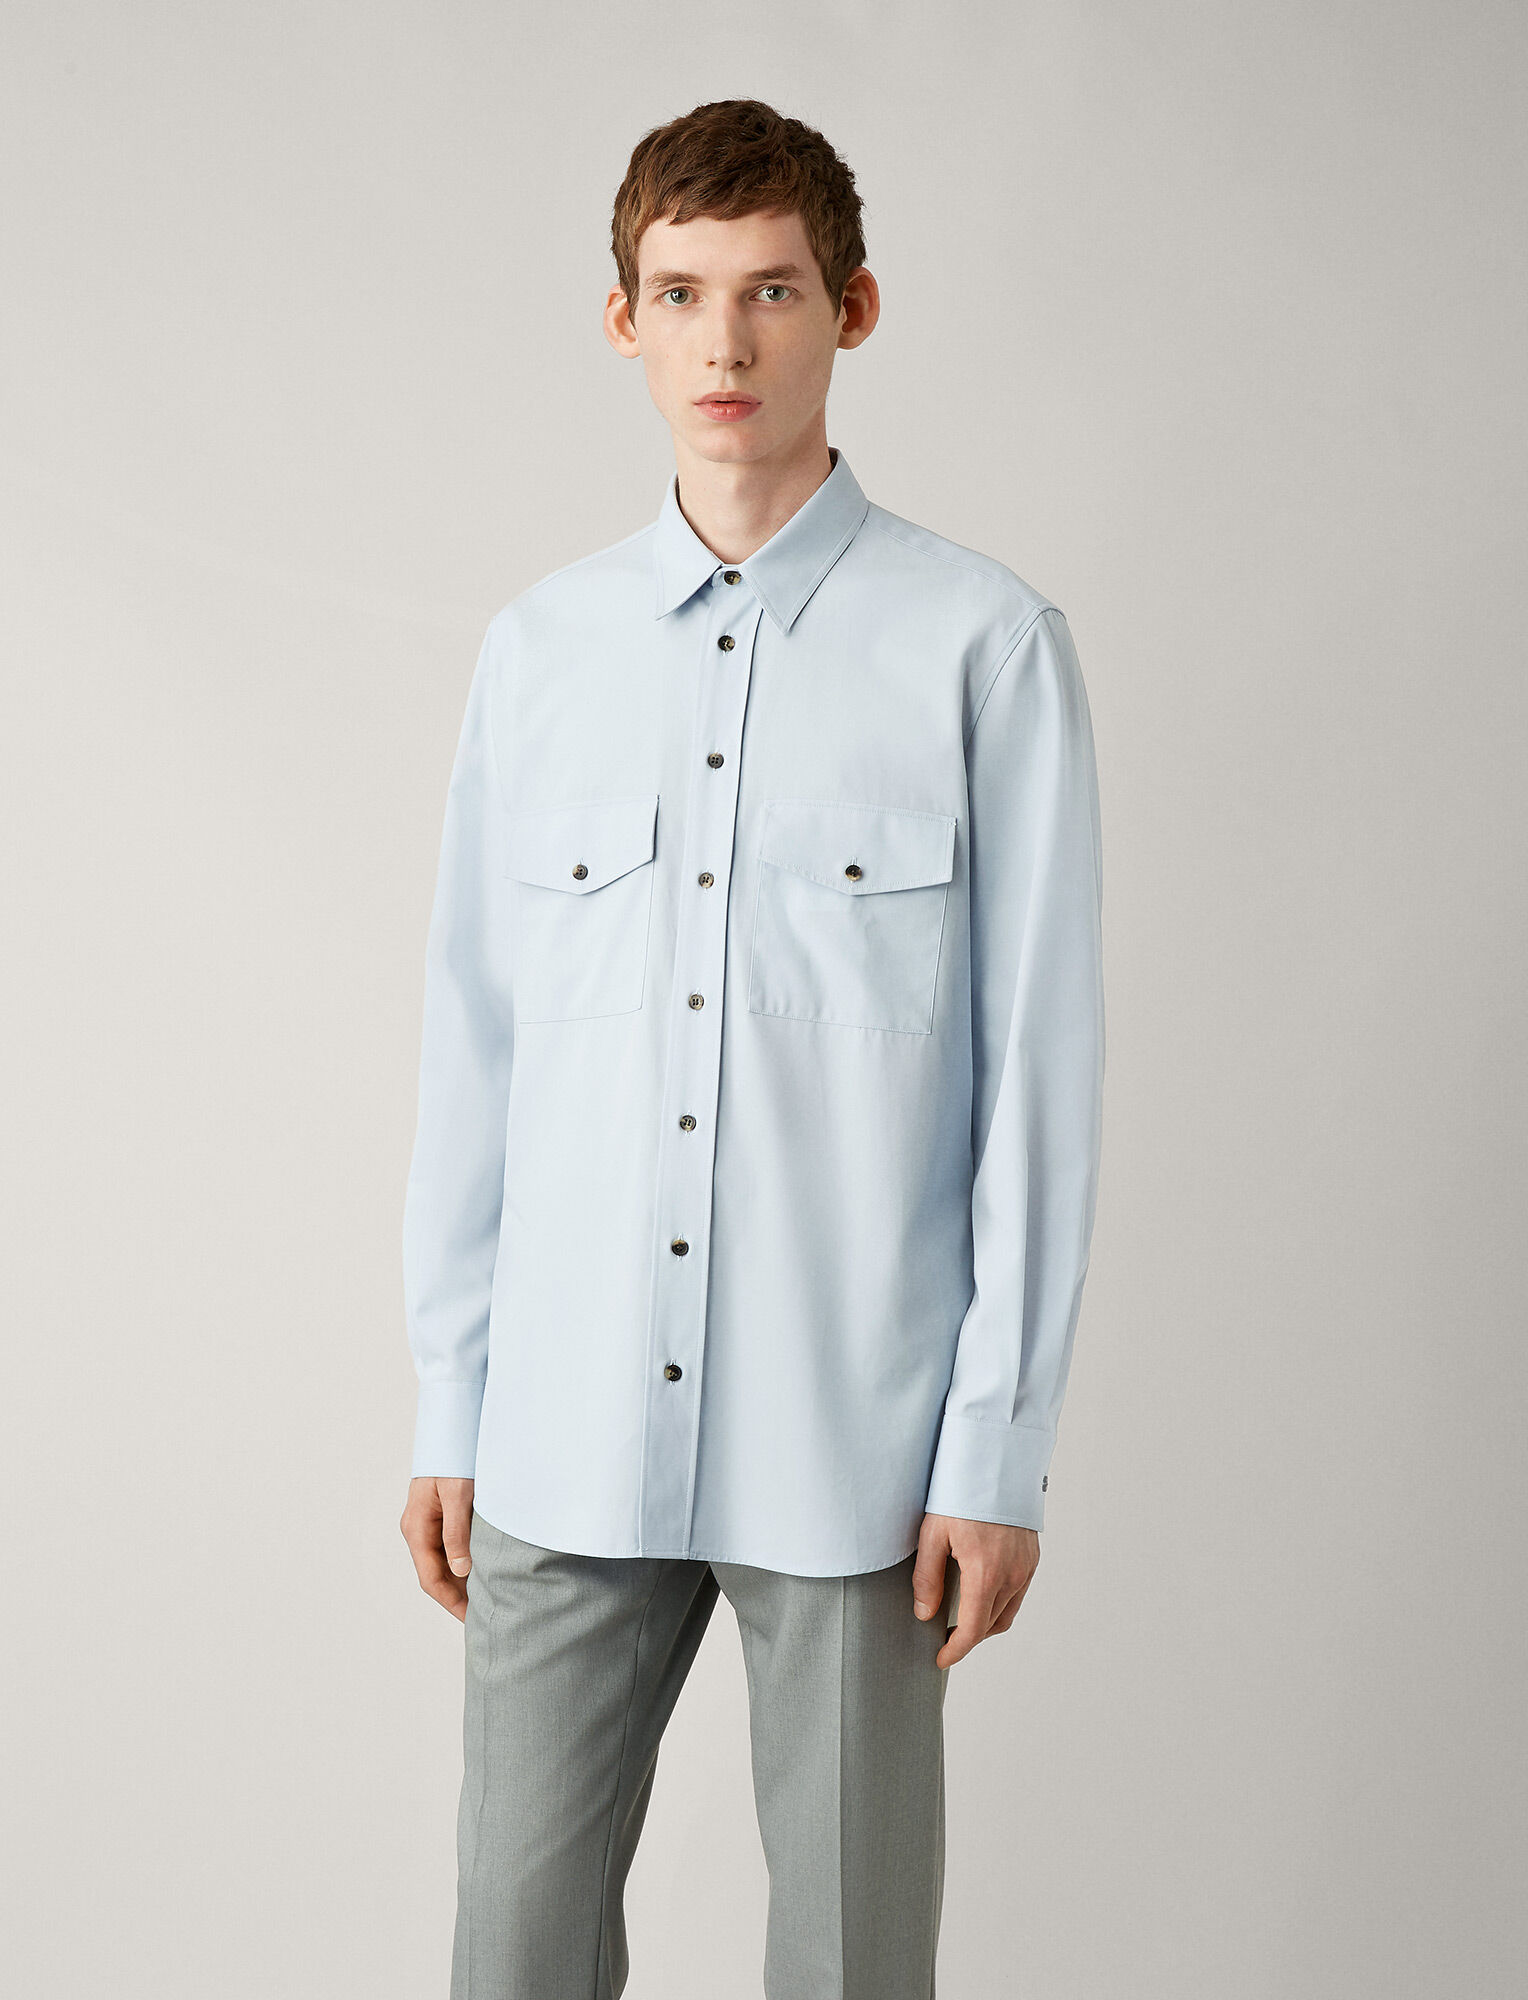 Joseph, Joseph Cotton Twill Shirt, in SKY BLUE